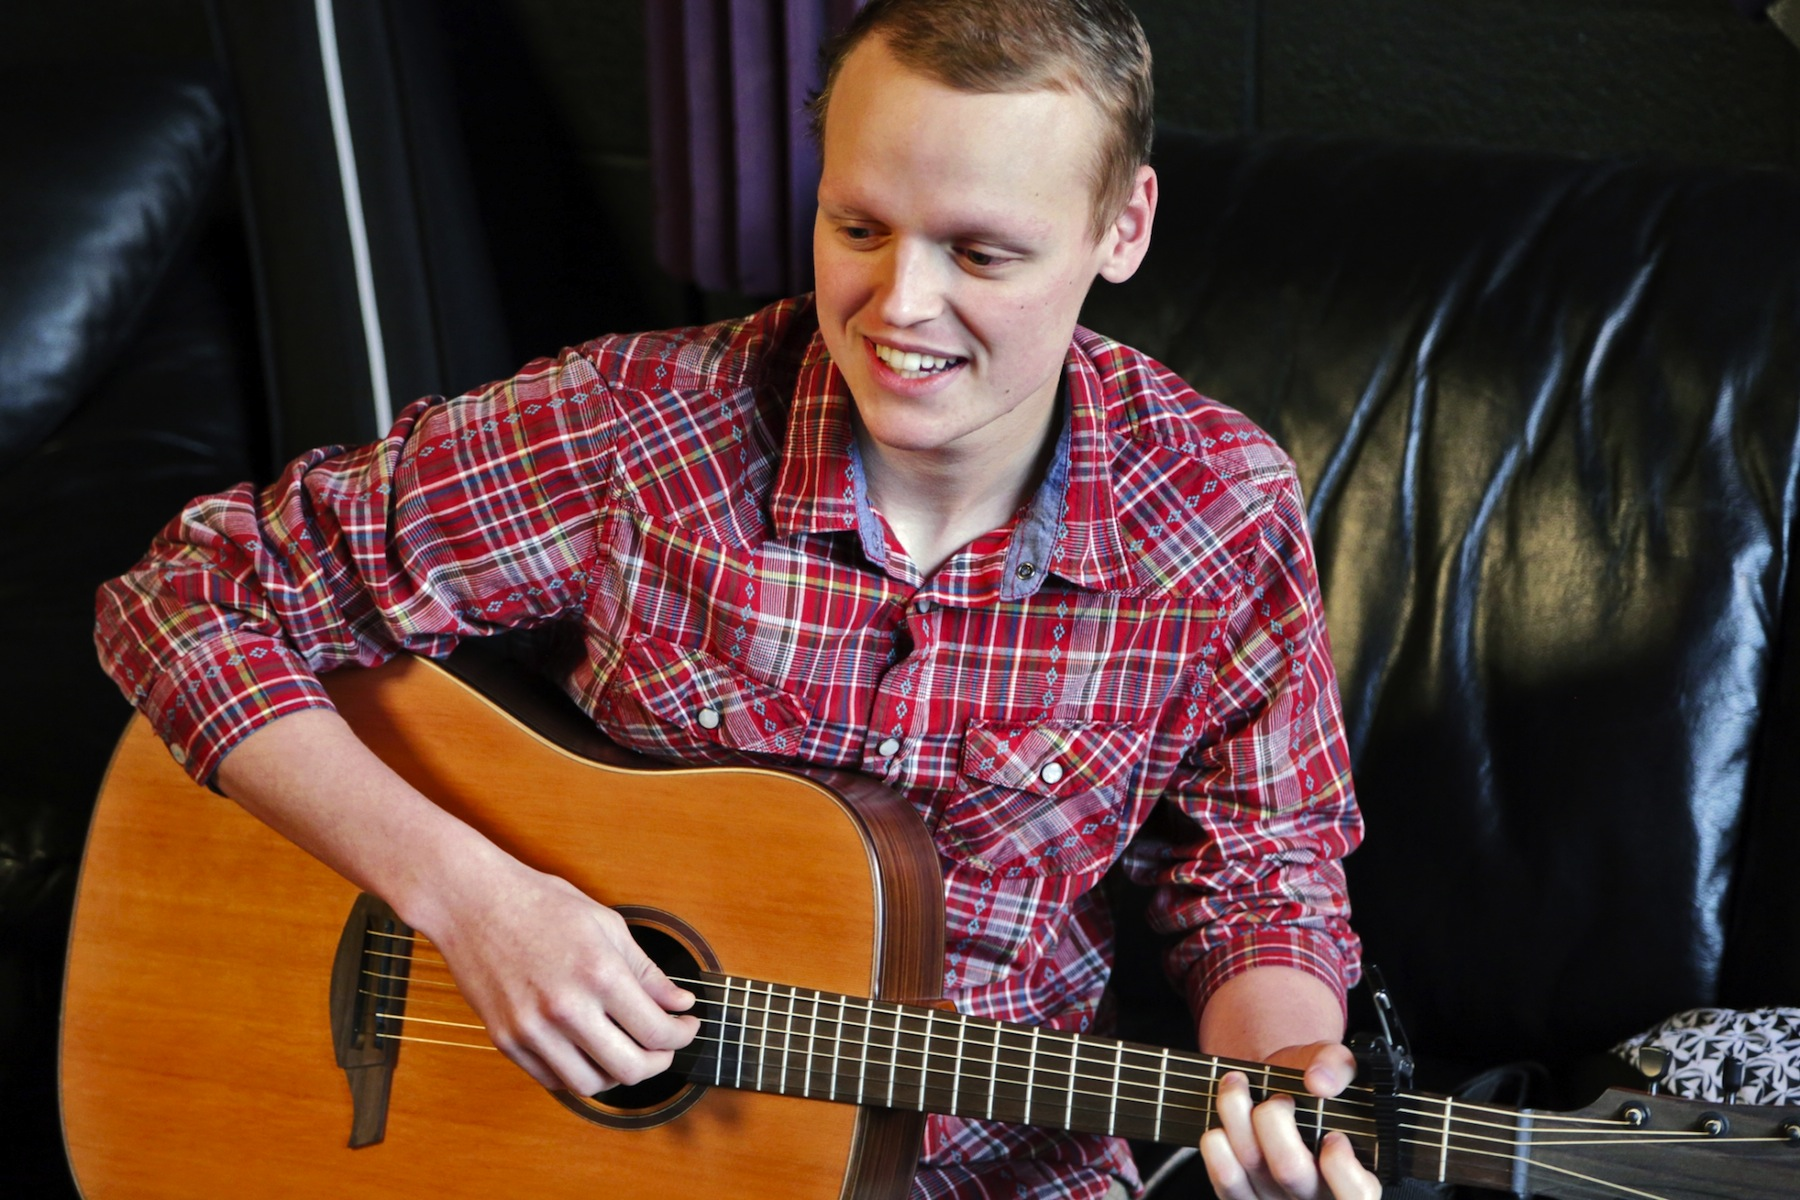 Zach Sobiech, whose goodbye song 'Clouds' touched millions, died on May 20 at age 18. (Star Tribune/Mike Rominiski)